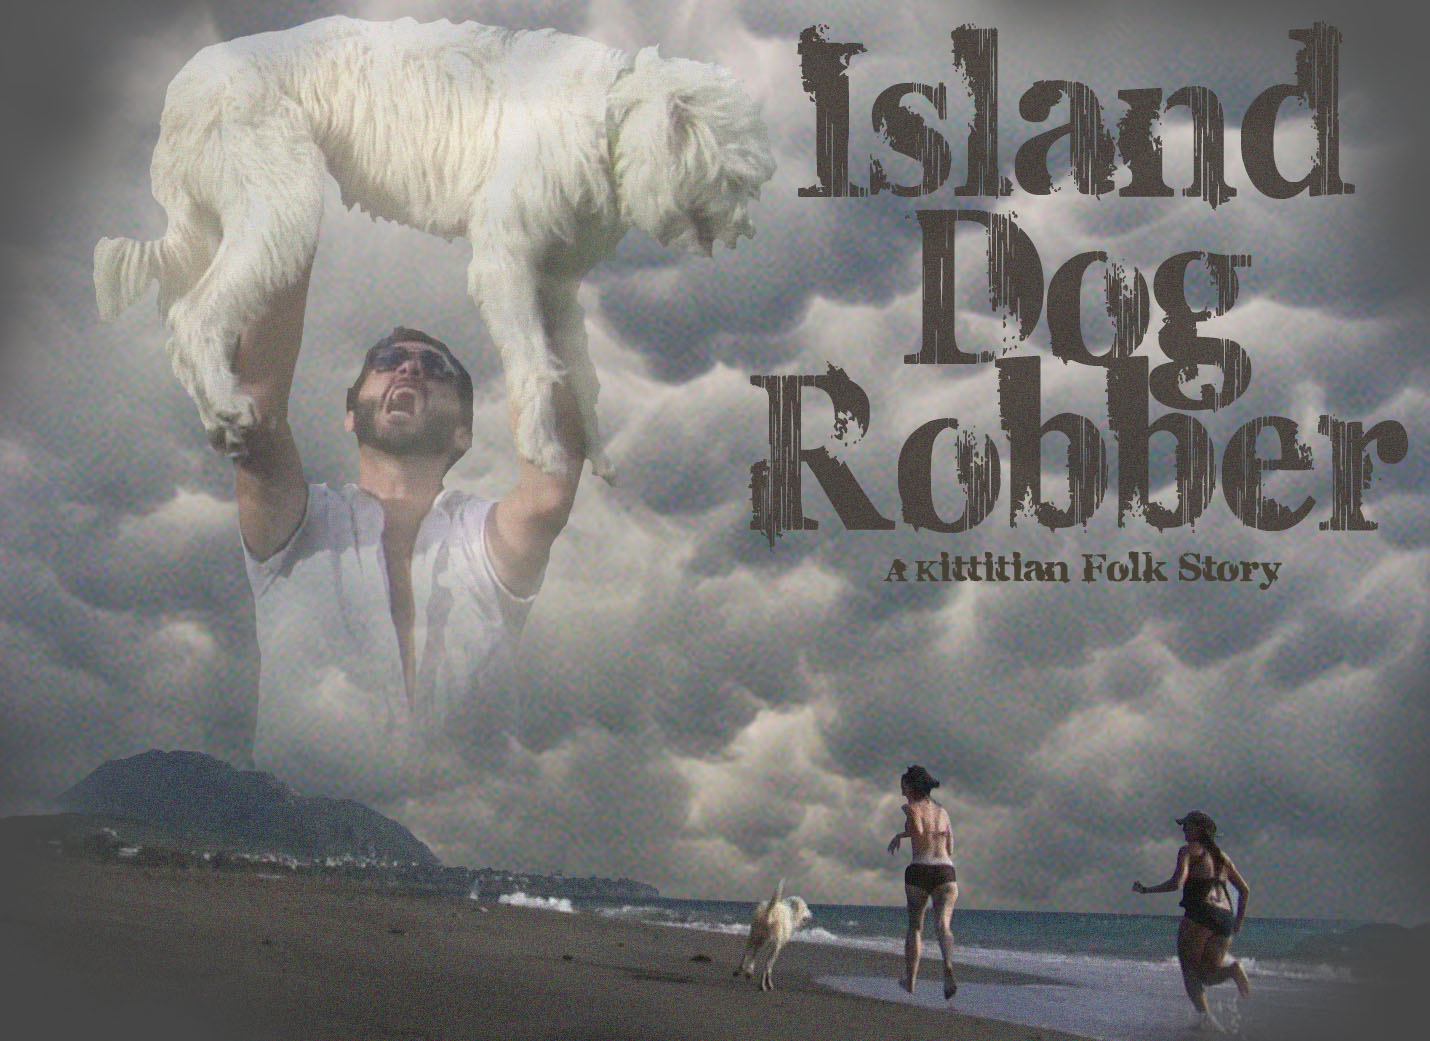 David Molinas Island Dog Robber beach poster